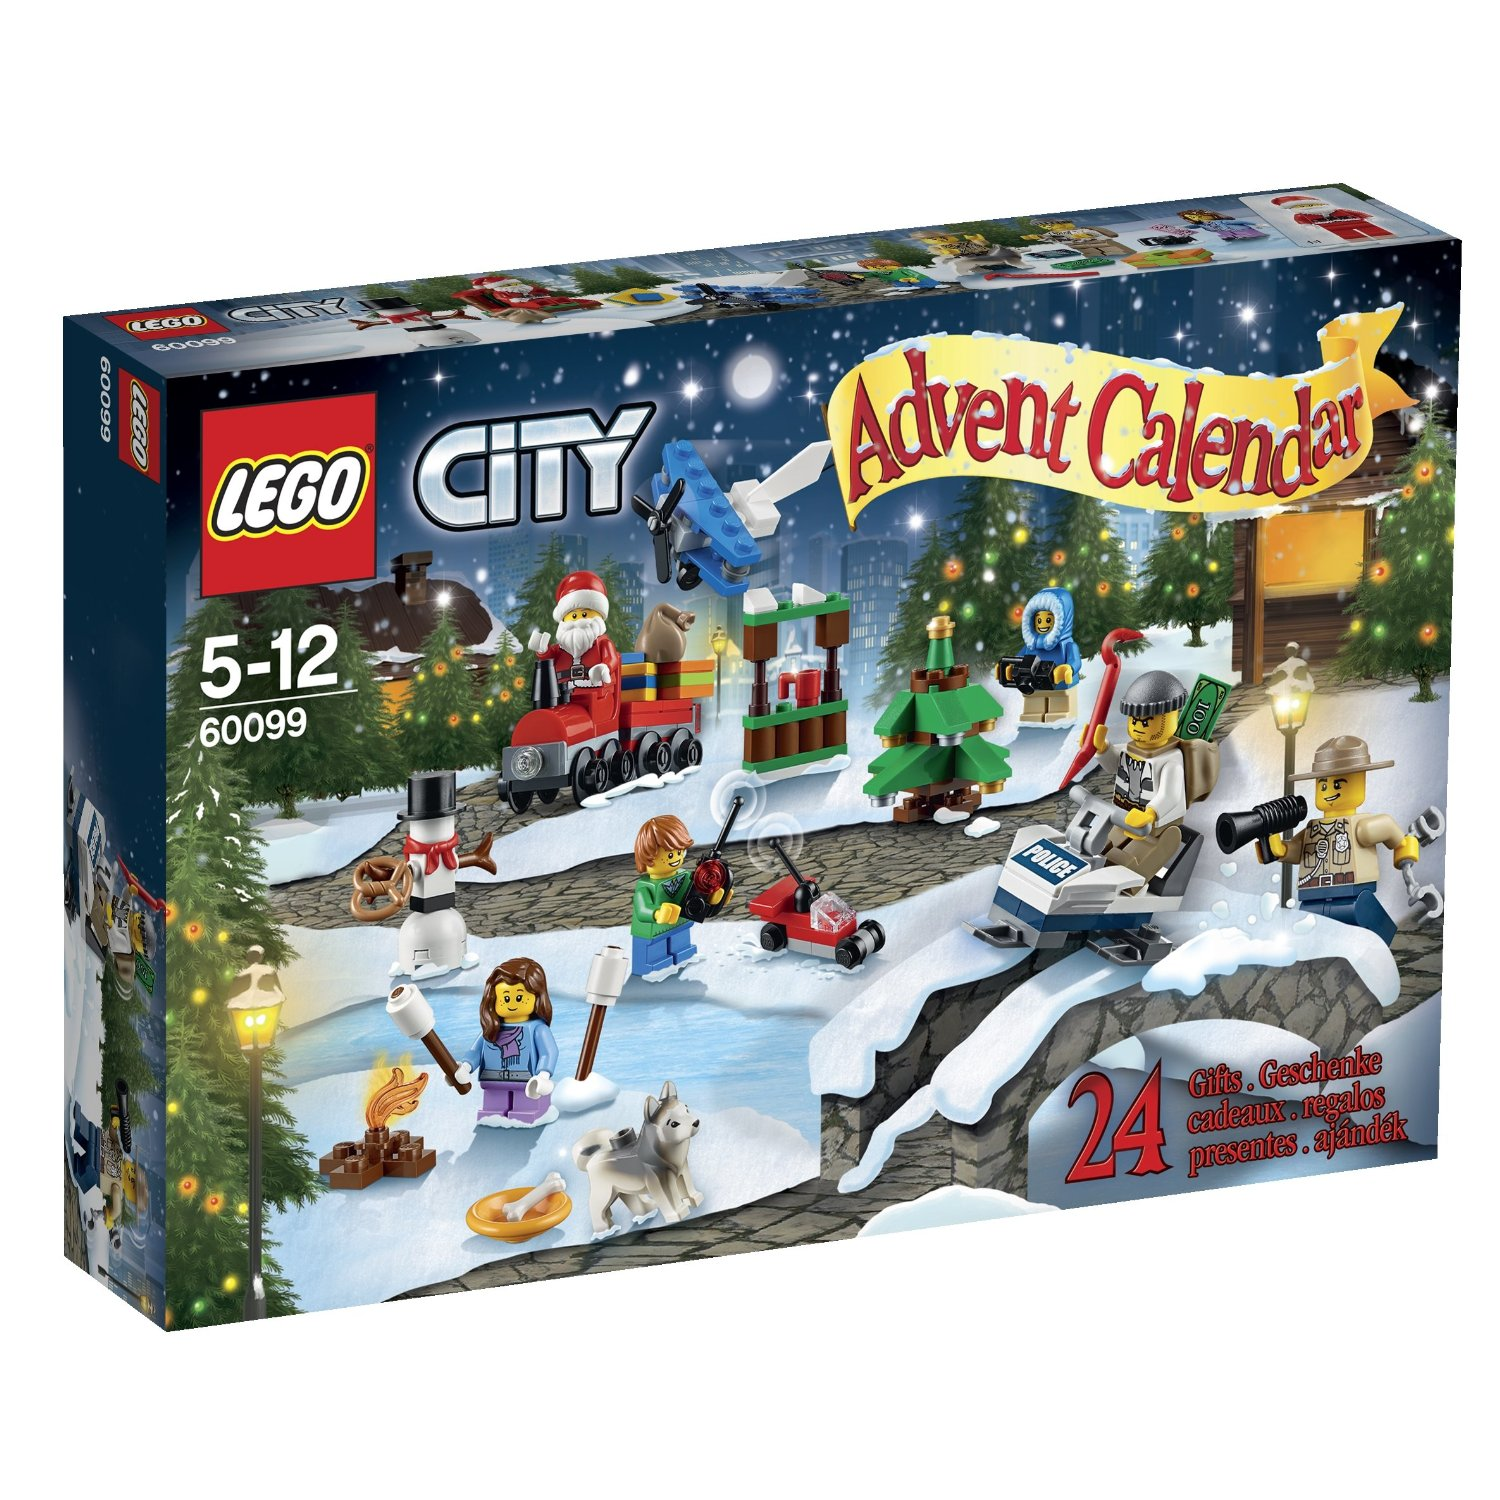 lego city adventskalender 2015 das steckt drin. Black Bedroom Furniture Sets. Home Design Ideas